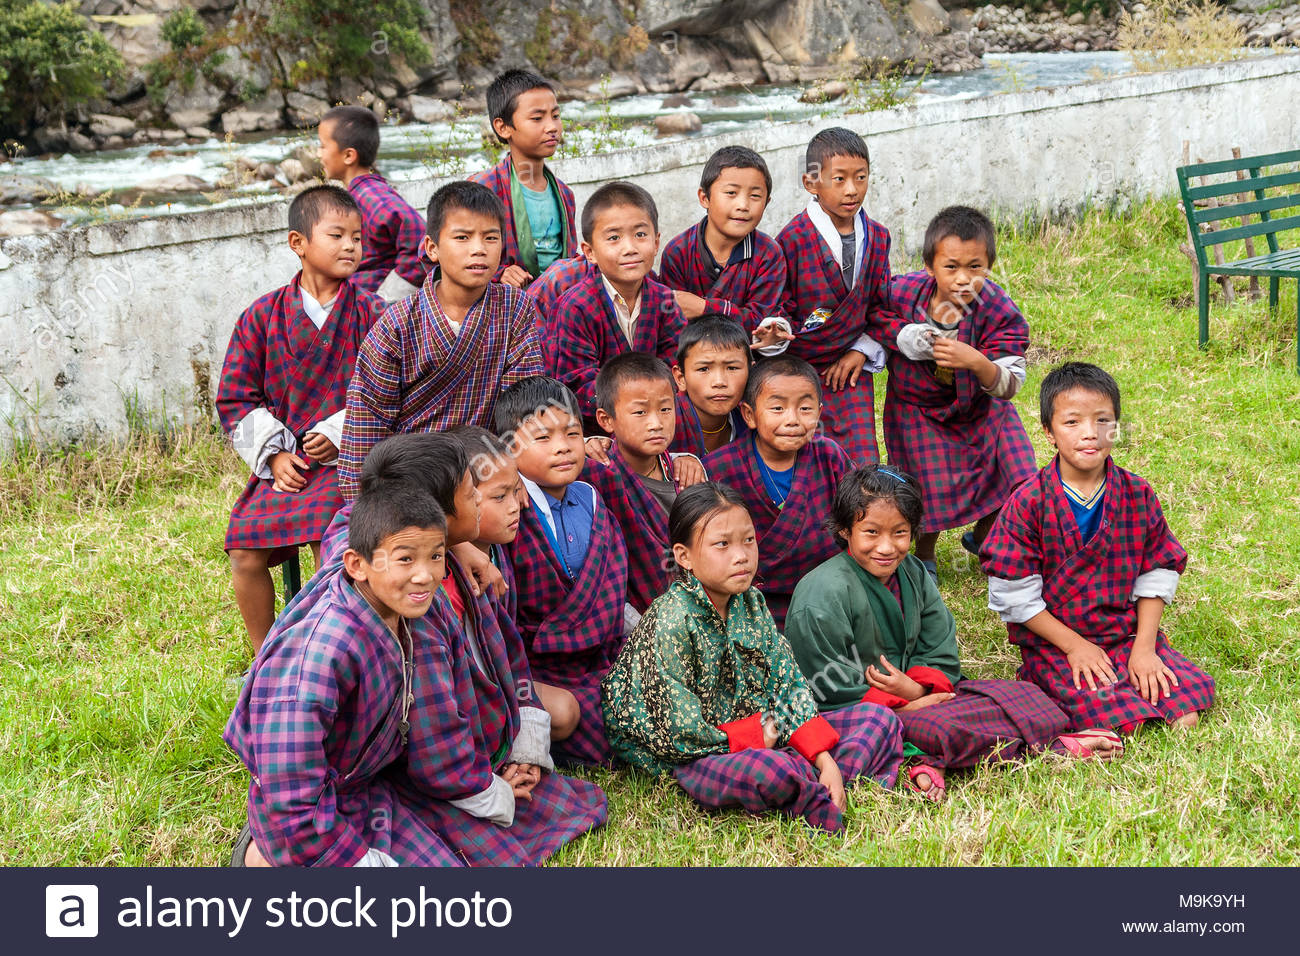 Group of Bhutanese children wearing the traditional dress - Eastern Bhutan - Stock Image